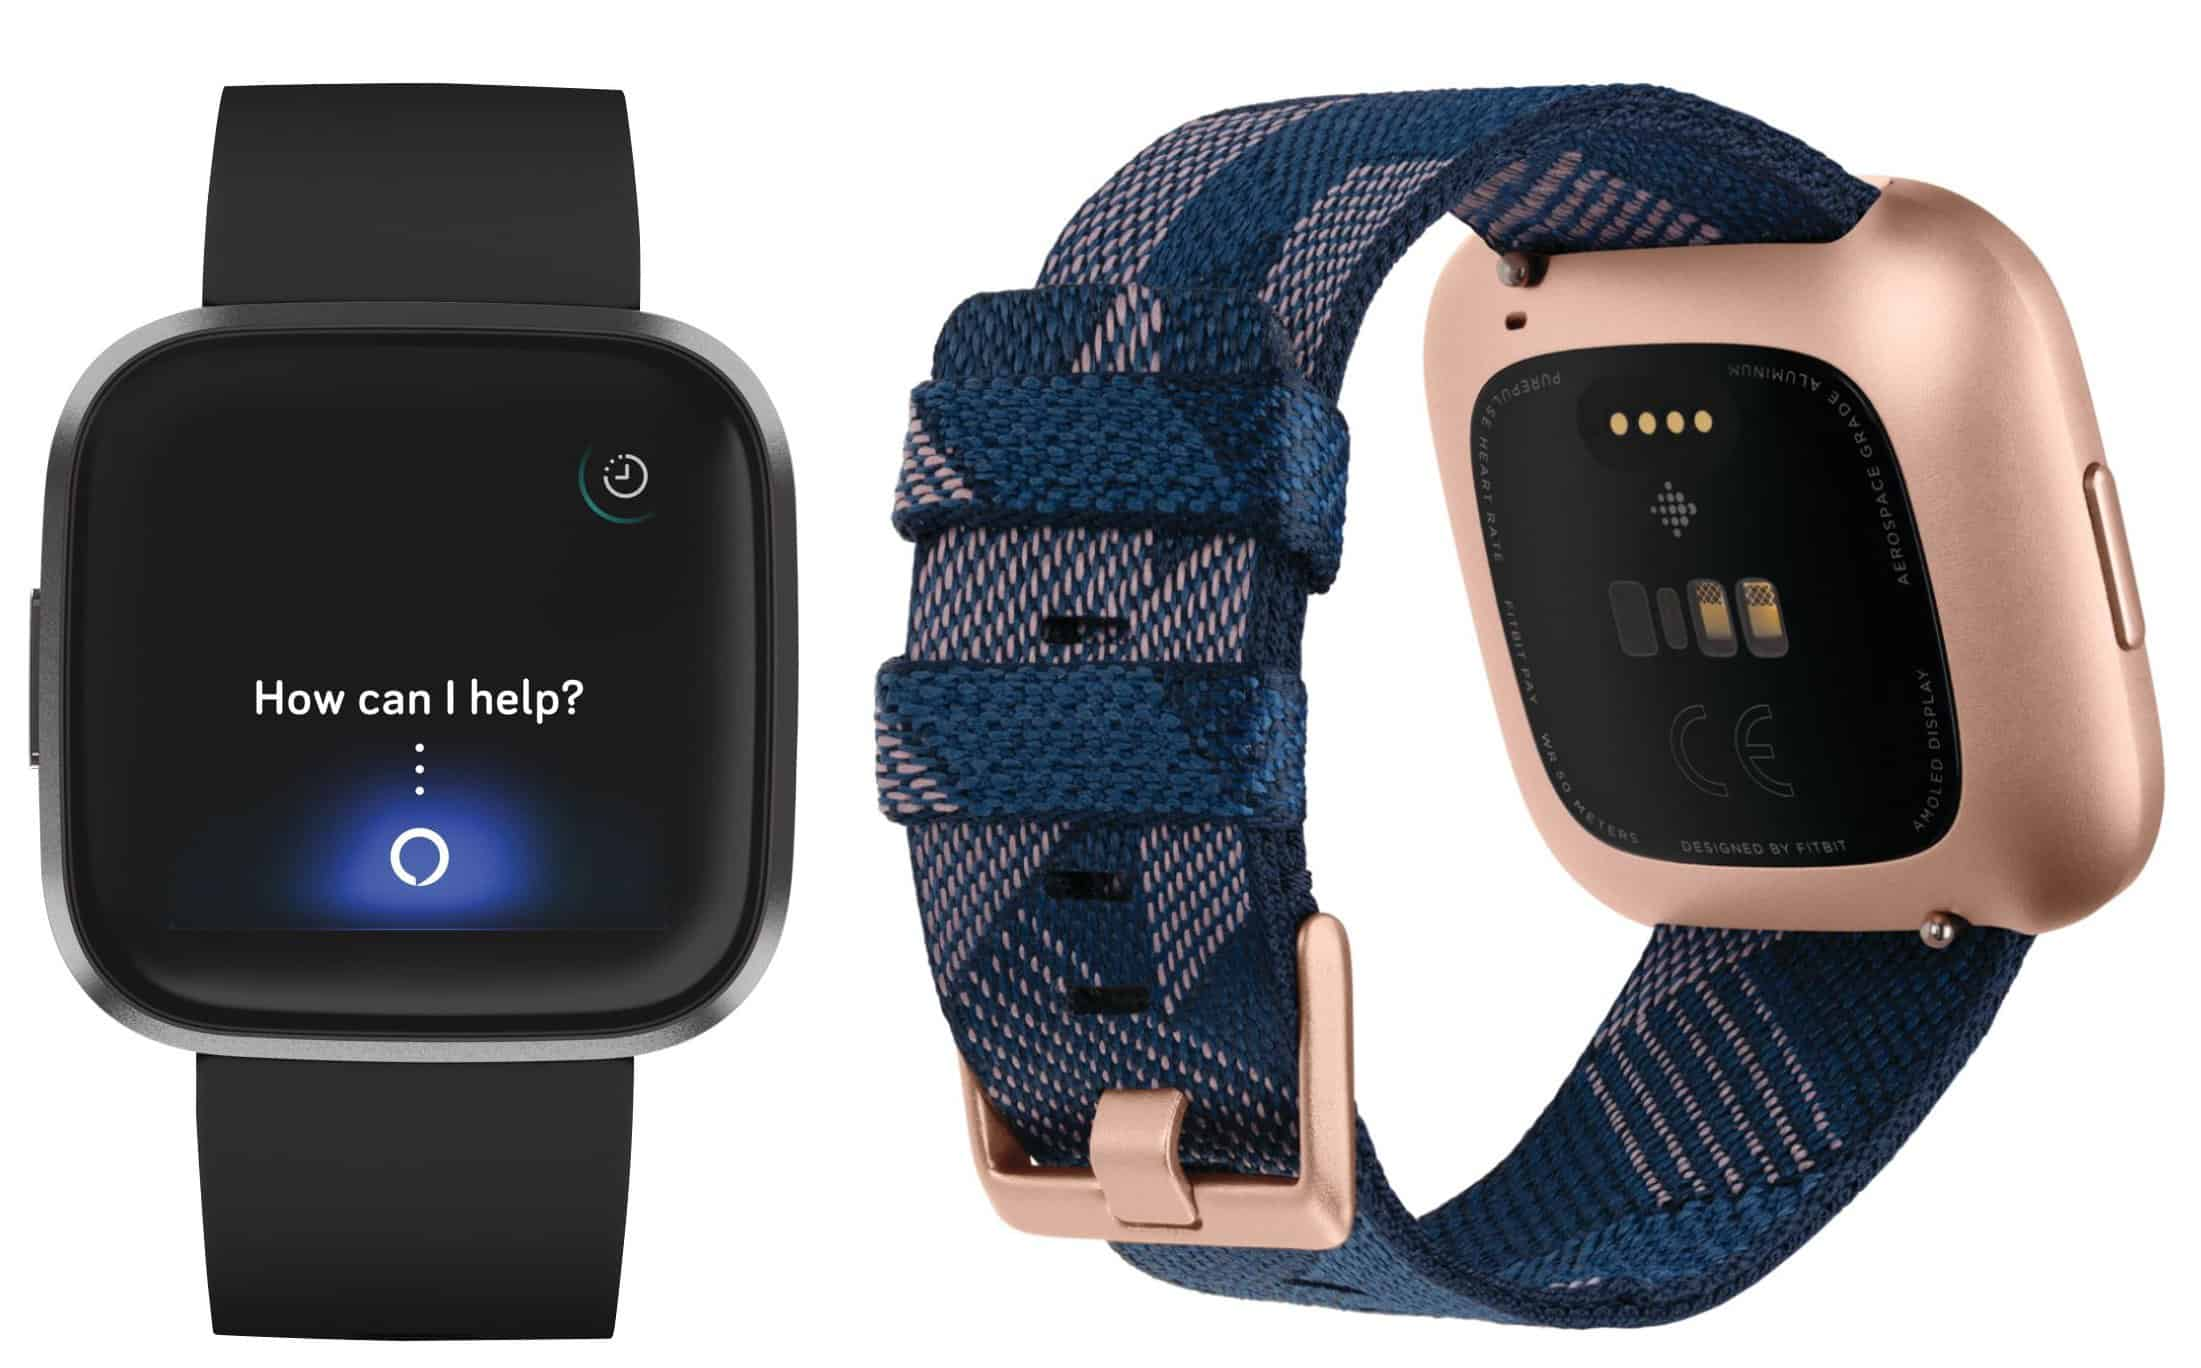 Fitbit Versa 2 initial review: Alexa, what's the new Fitbit smartwatch like?